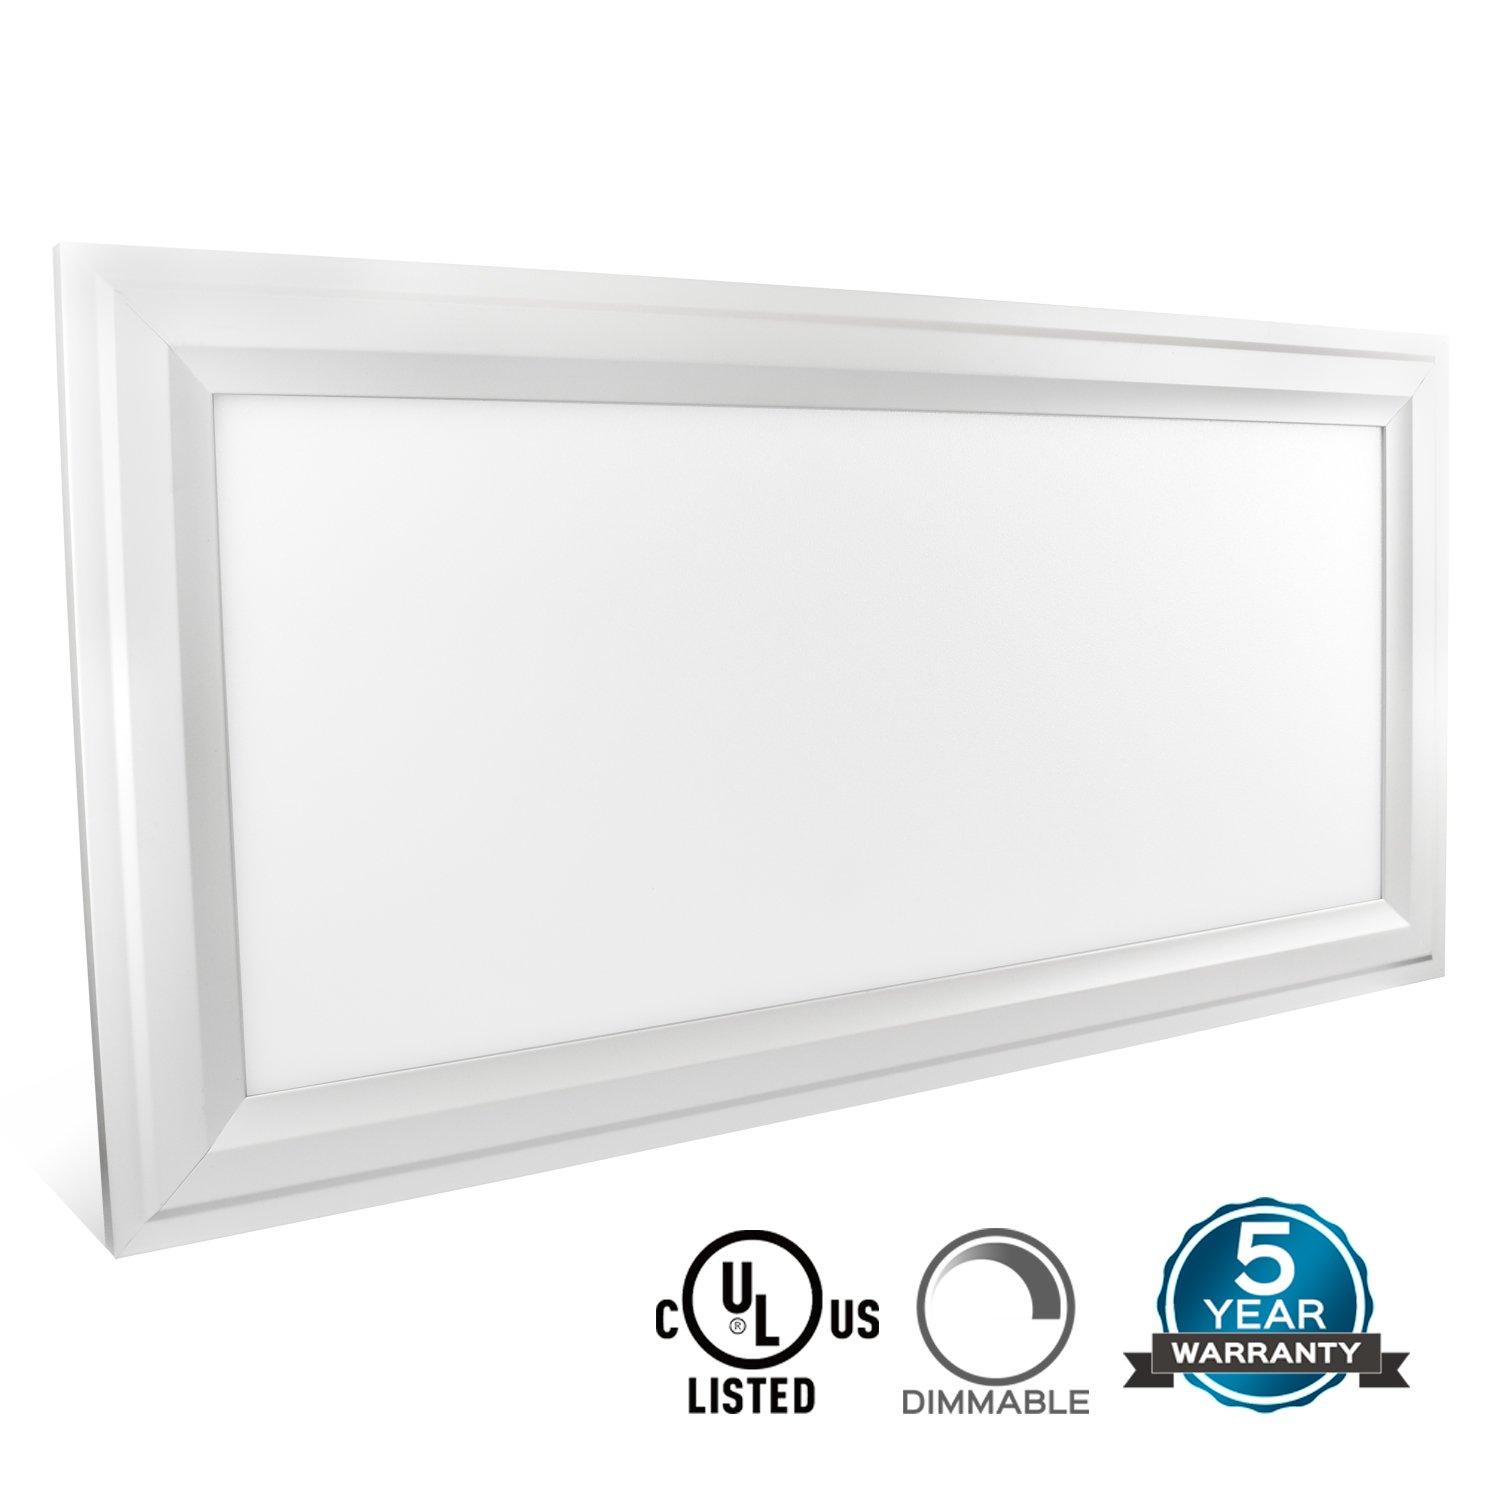 Luxrite 1x2 FT LED Panel Light Fixture, Ultra Thin Edge Lit 25W, 3000K Soft White, 2250 Lumens, Dimmable, Flushmount... by Luxrite